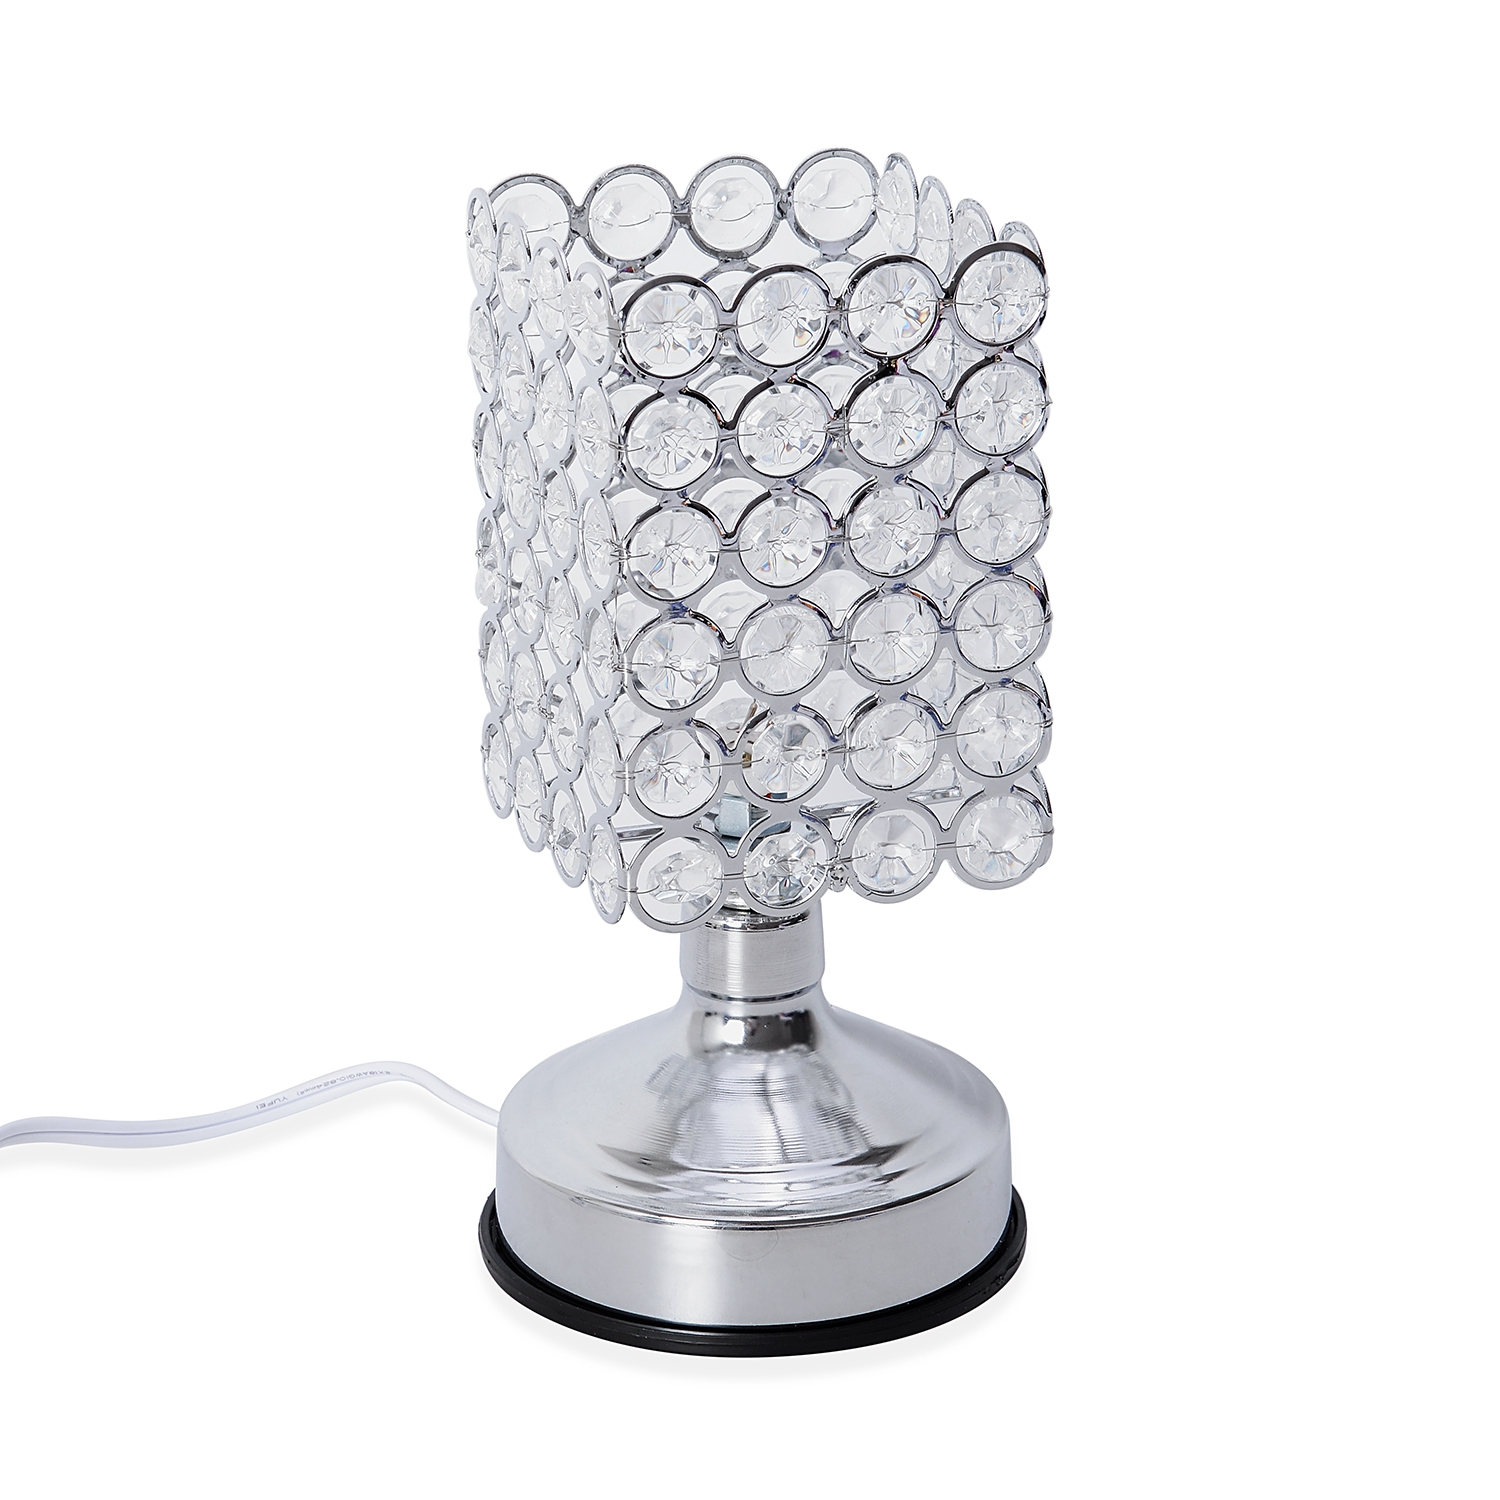 3 Stage Touch Dimmer Silvertone Square Shape Table Lamp 8 1x3 5 In